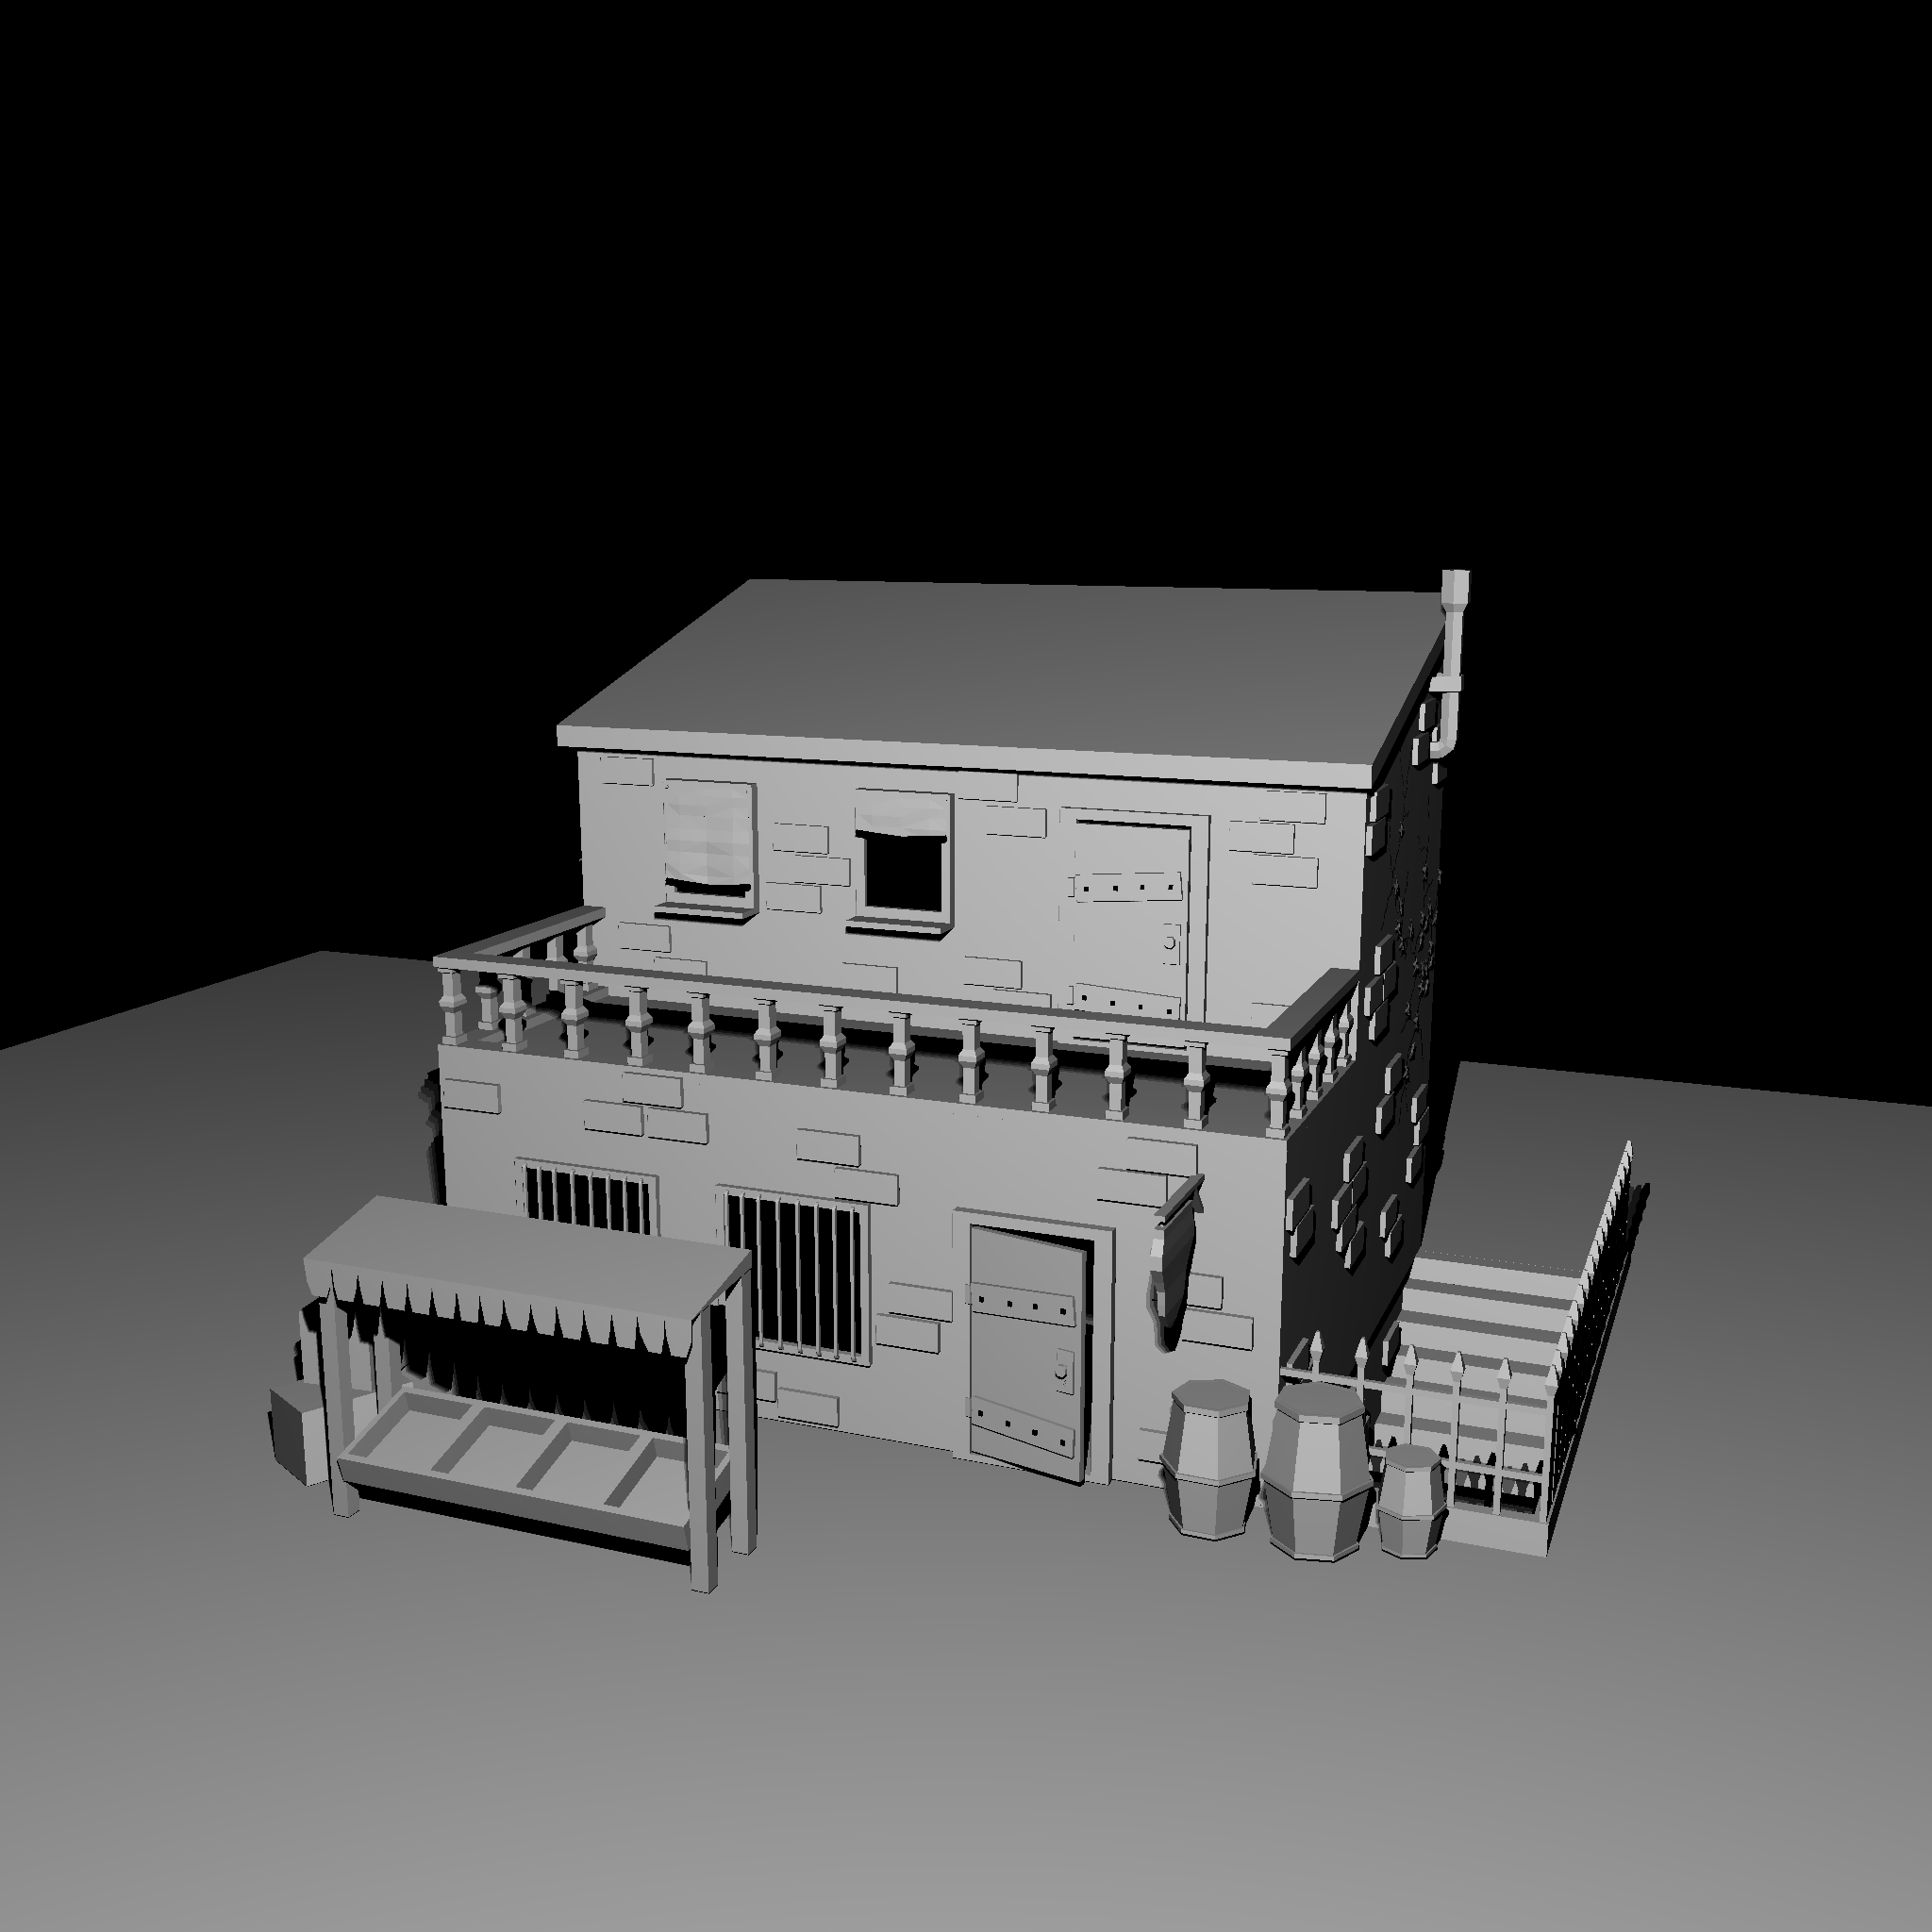 Image showing a raytraced house model